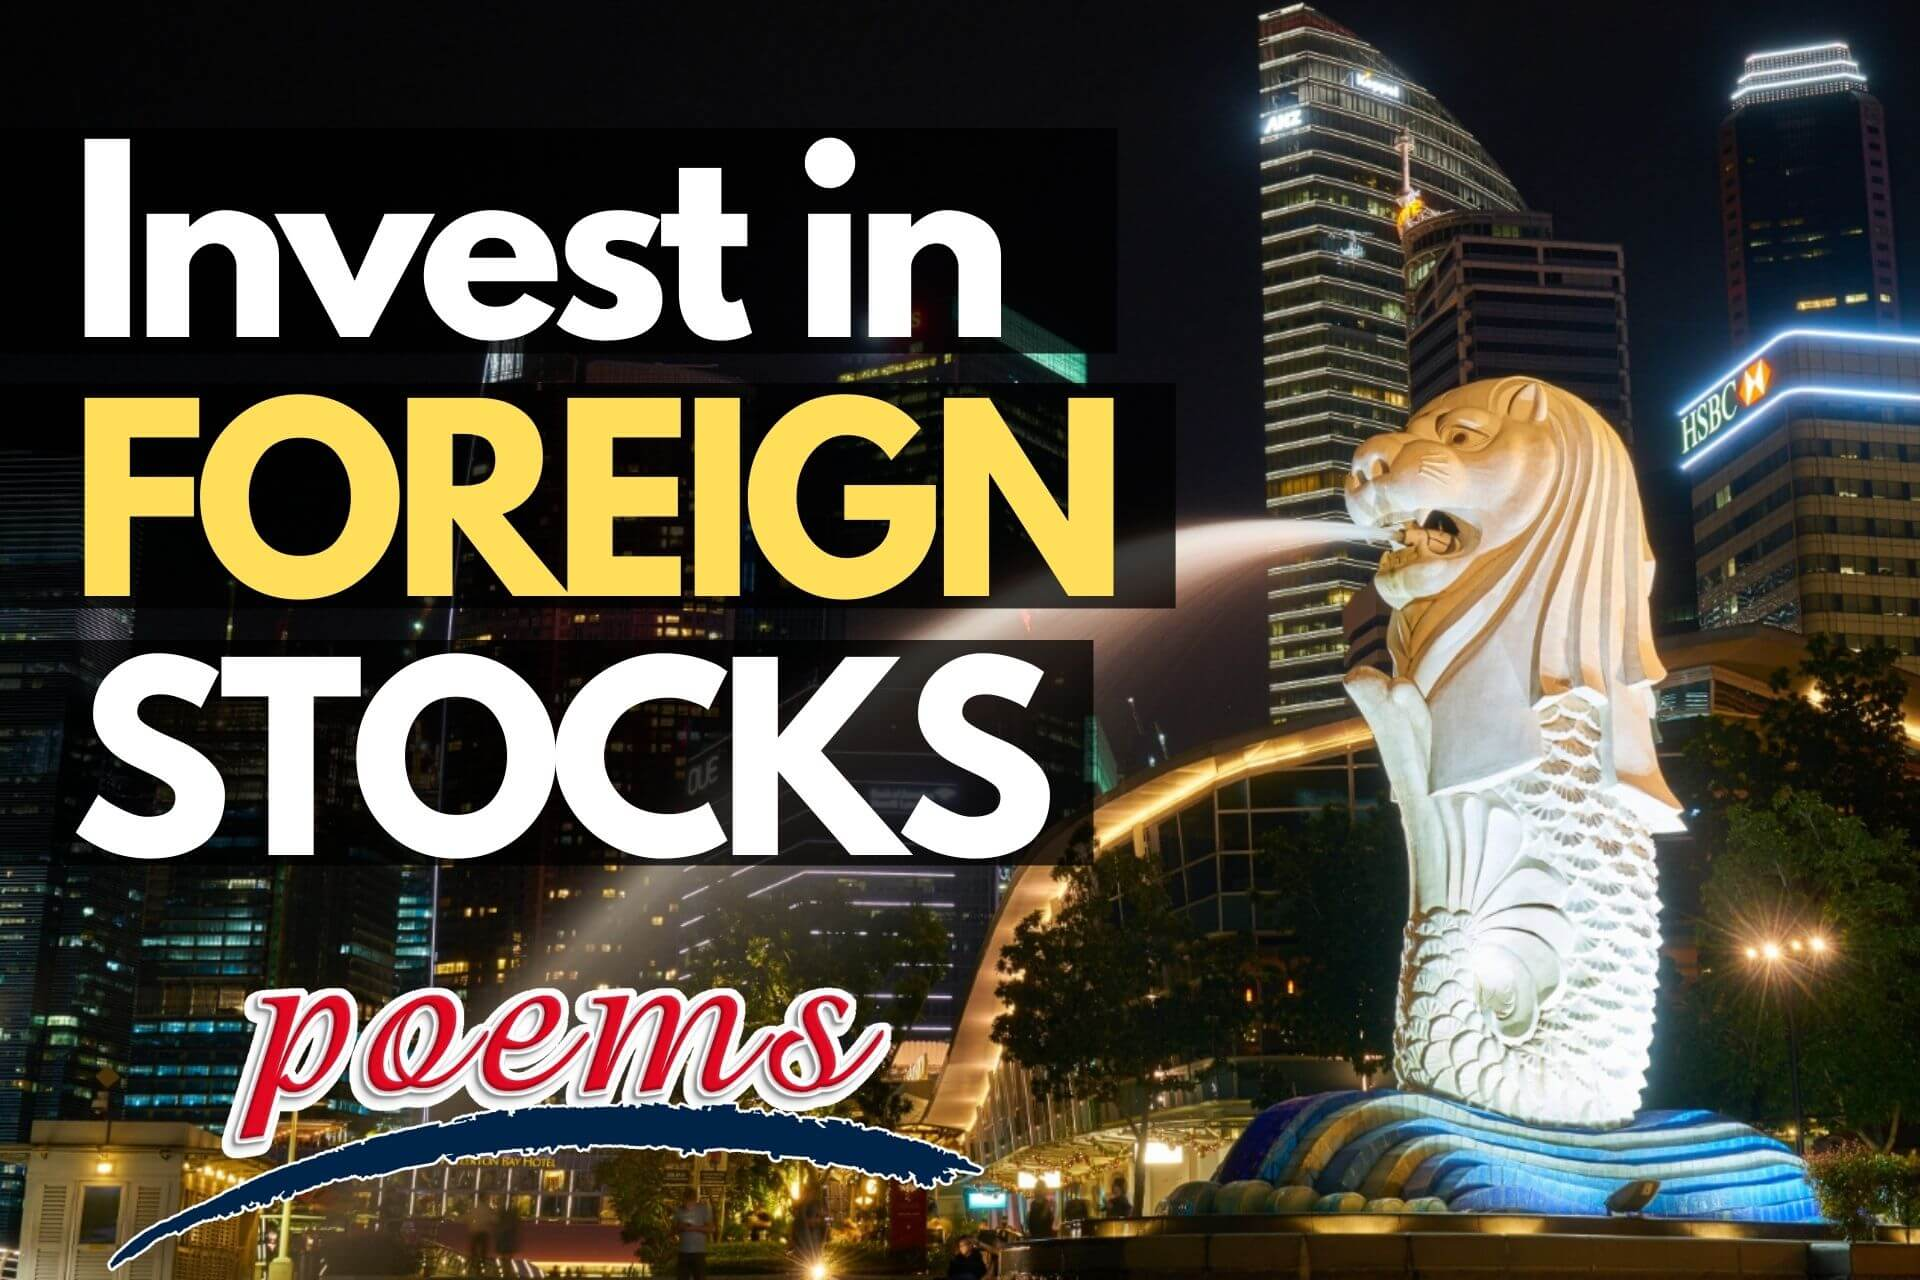 Invest in Foreign Shares with Singapore's No.1 Full Service Broker!